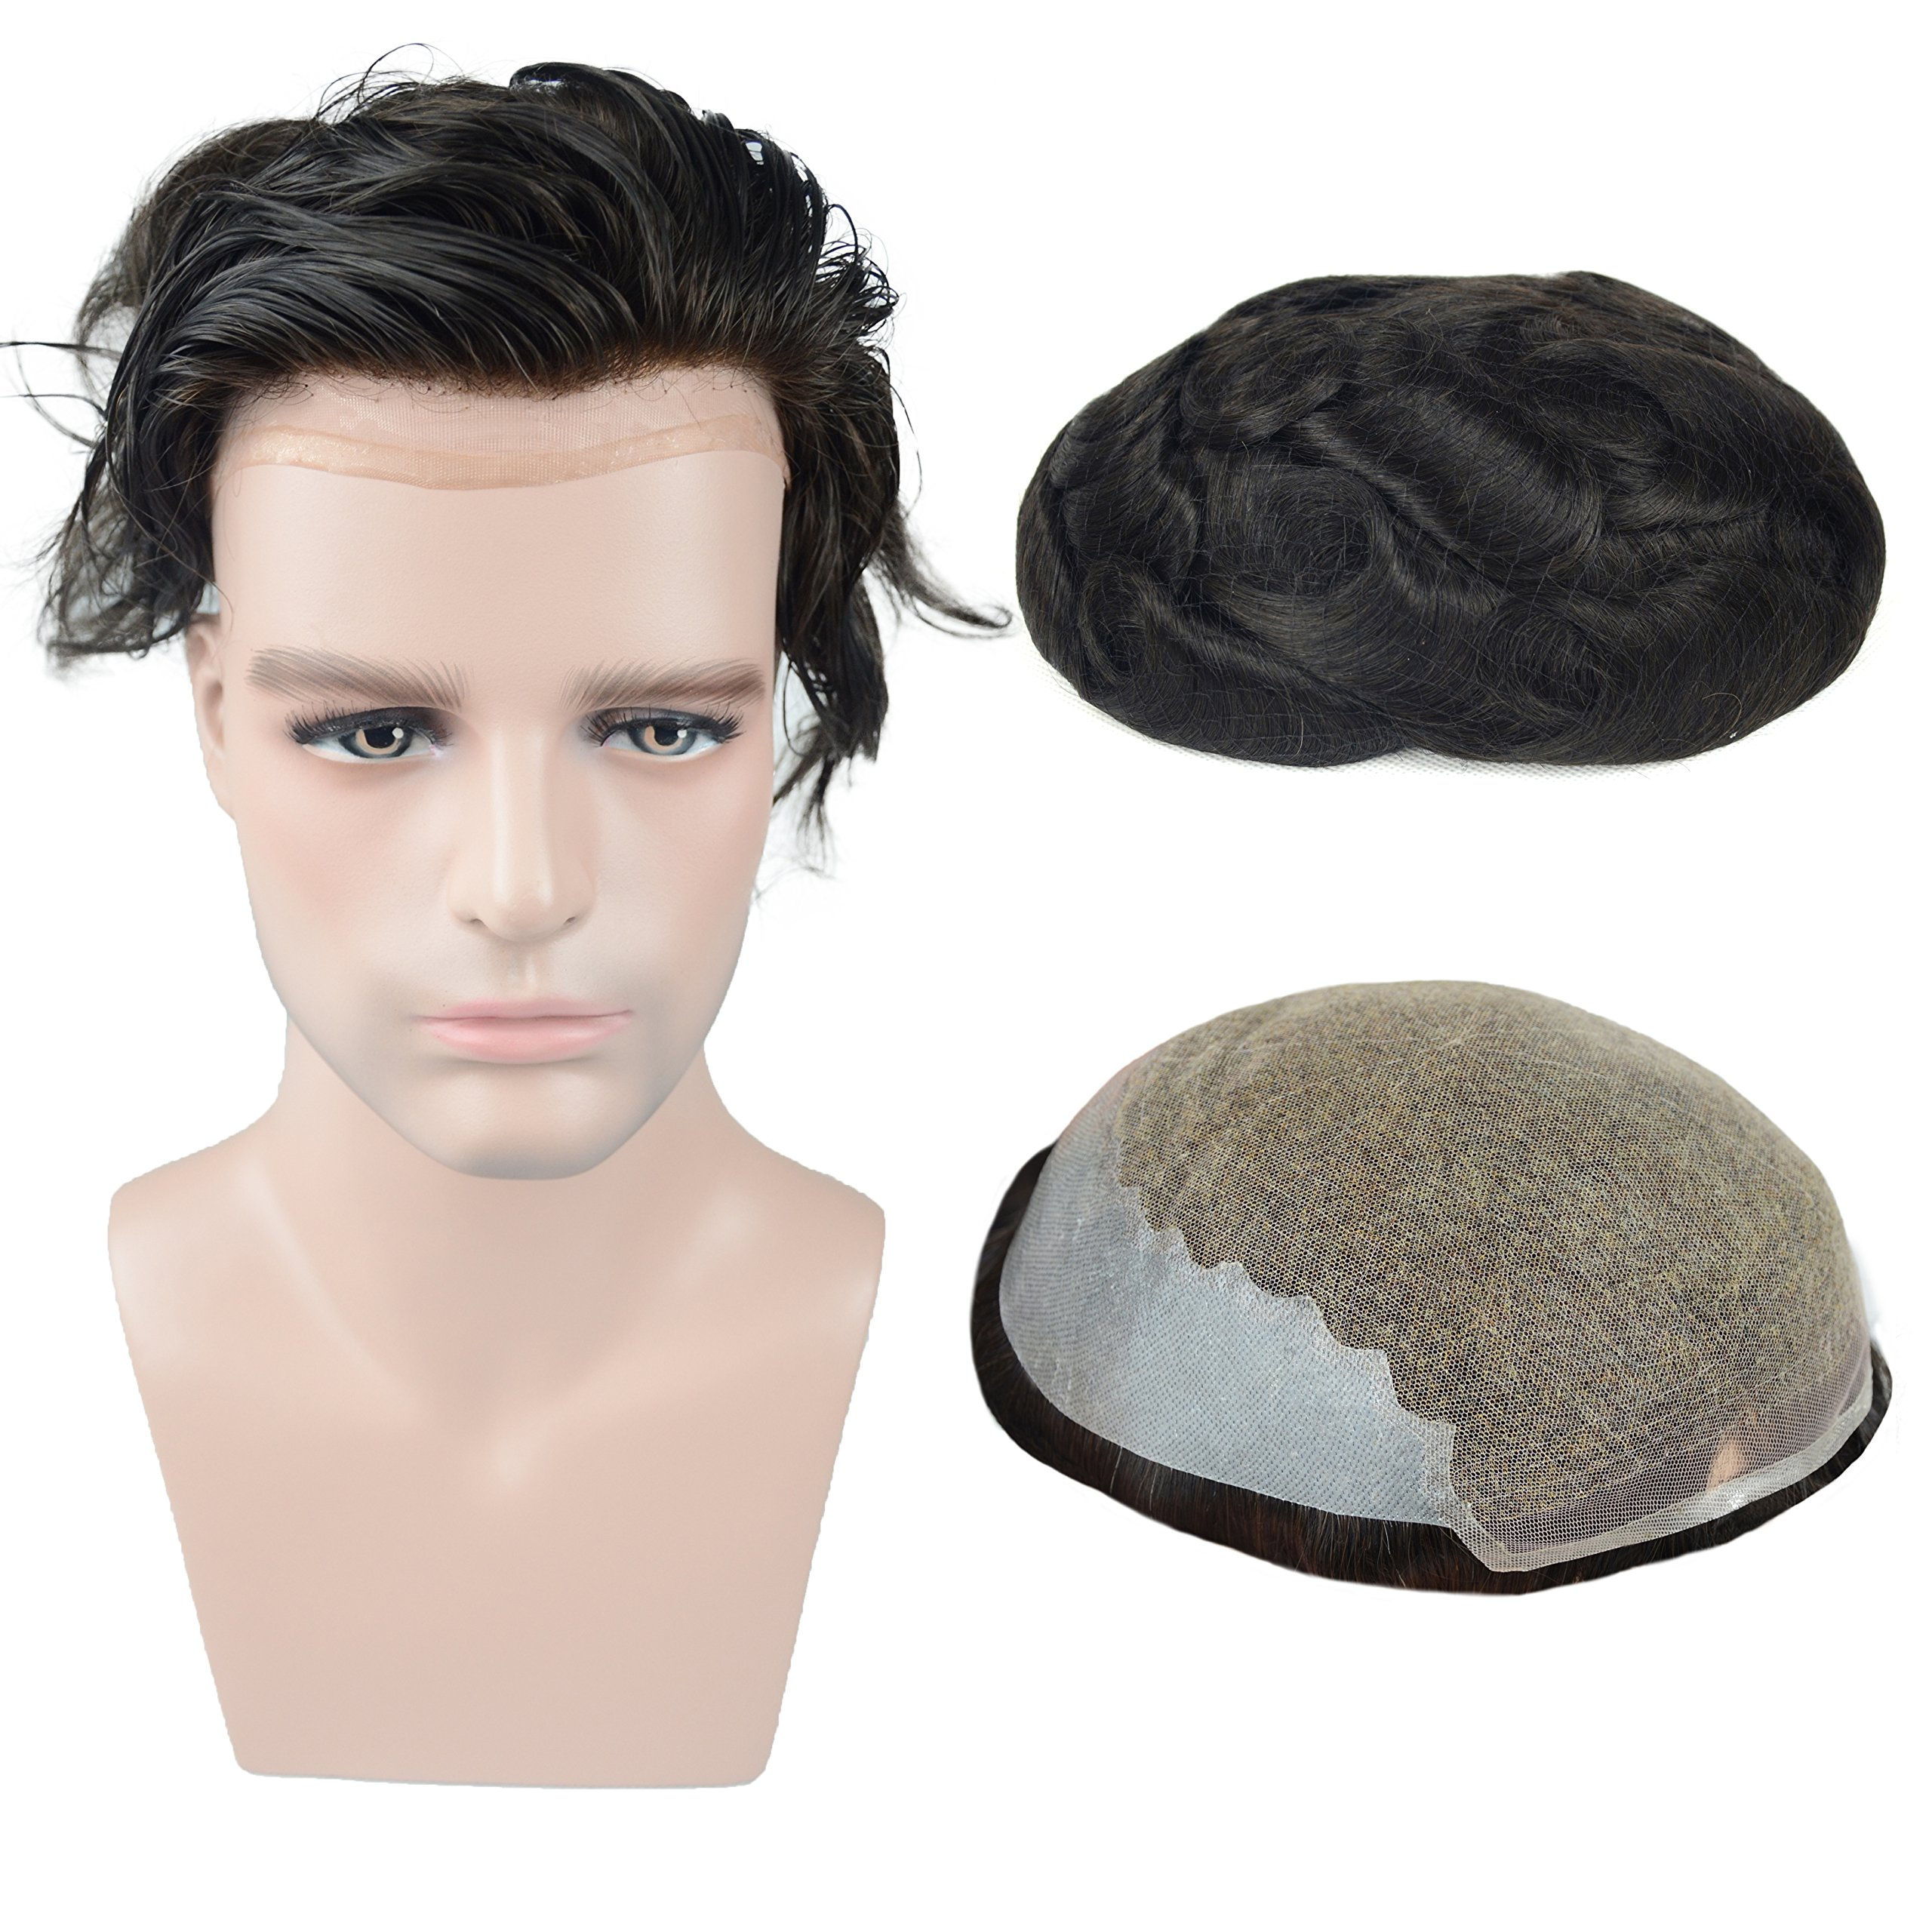 Human Hair Toupee for Men 7.5x9.5 Inch Soft French Lace Cap with 2inch Clearly PU in Back, Veer Natural Wave Men's Hairpiece Replacement System Off Black Color(#1b)